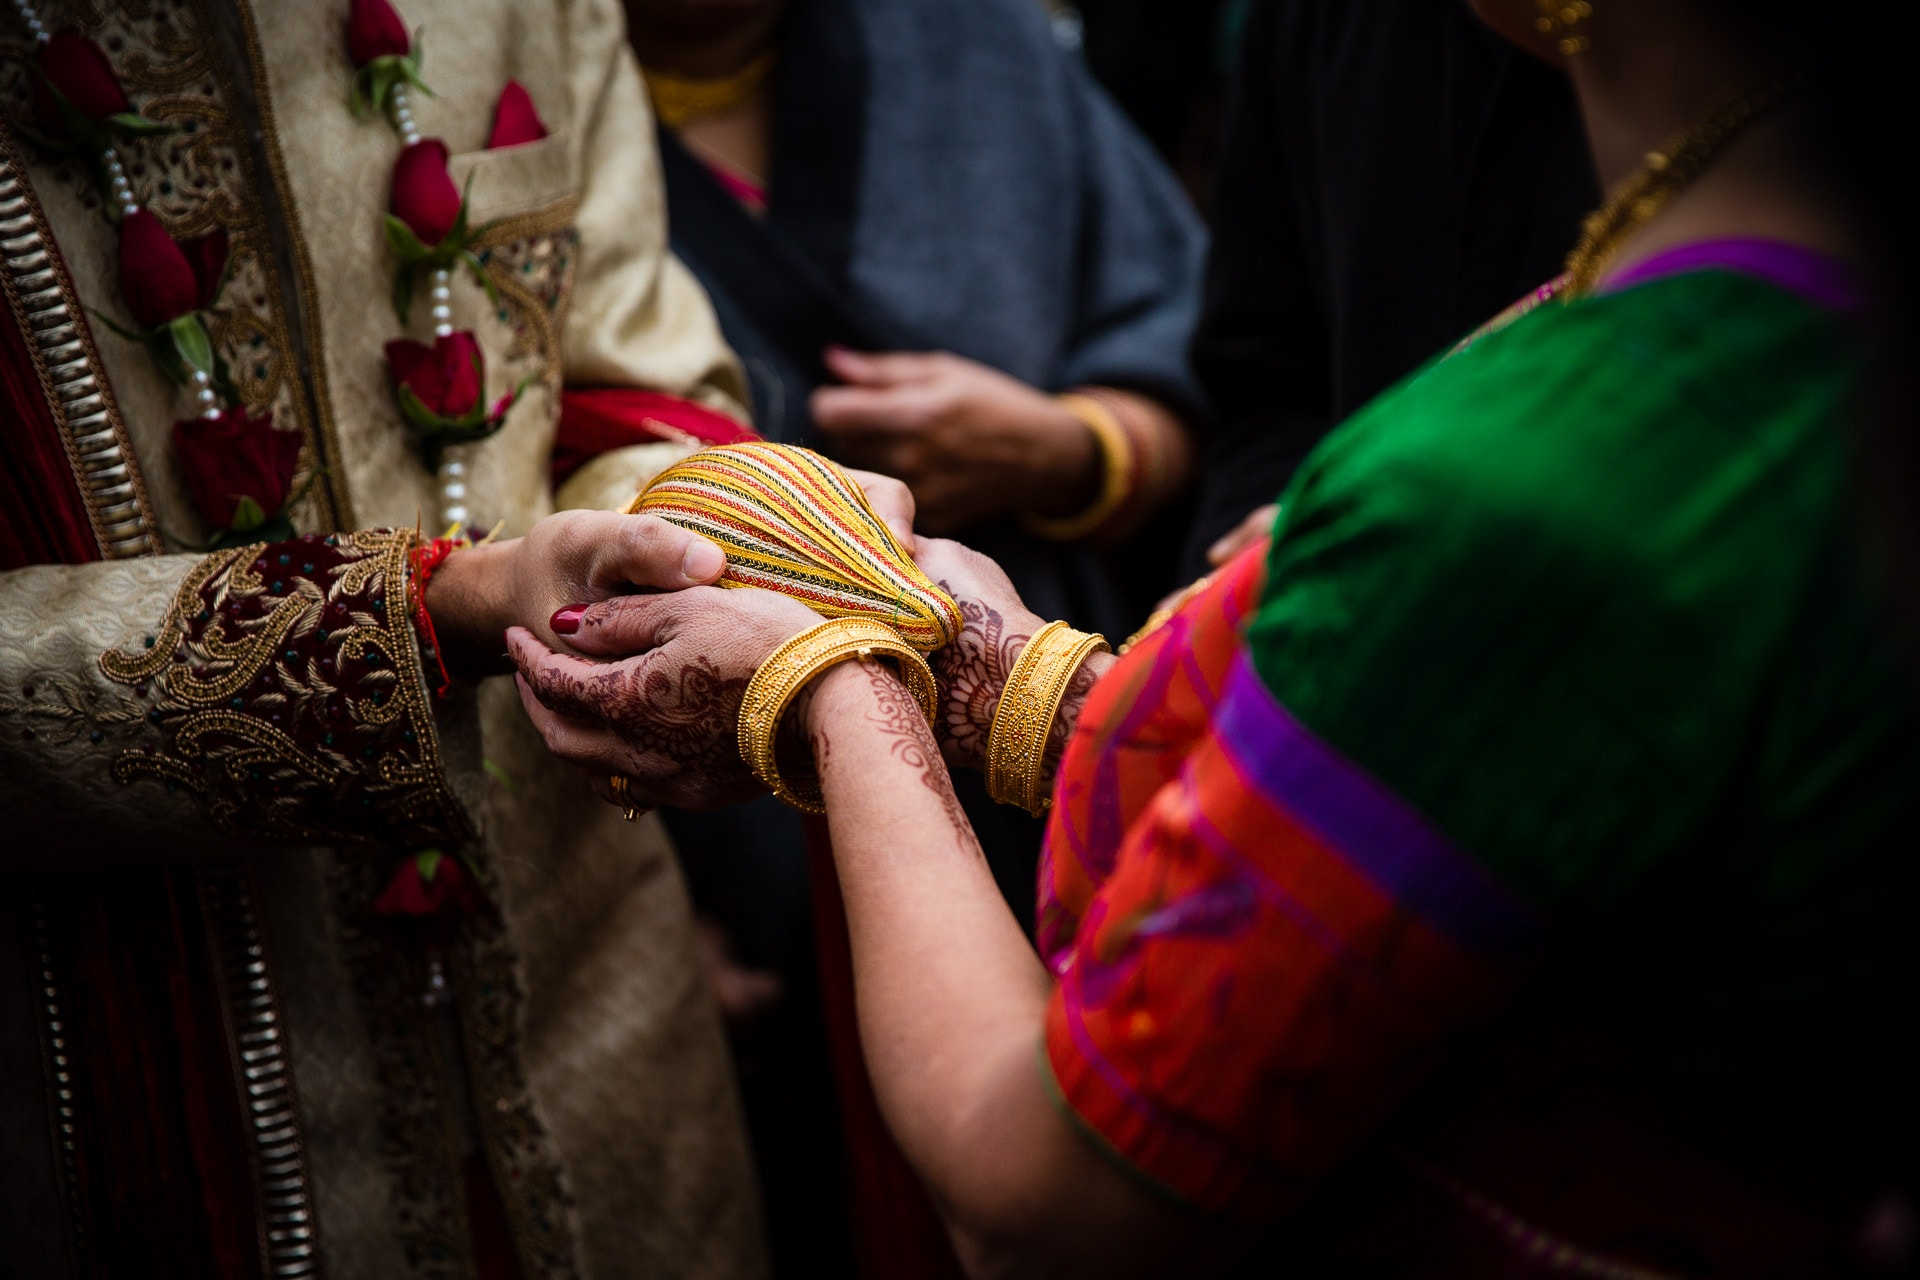 Exchanging of coconuts during Hindu wedding